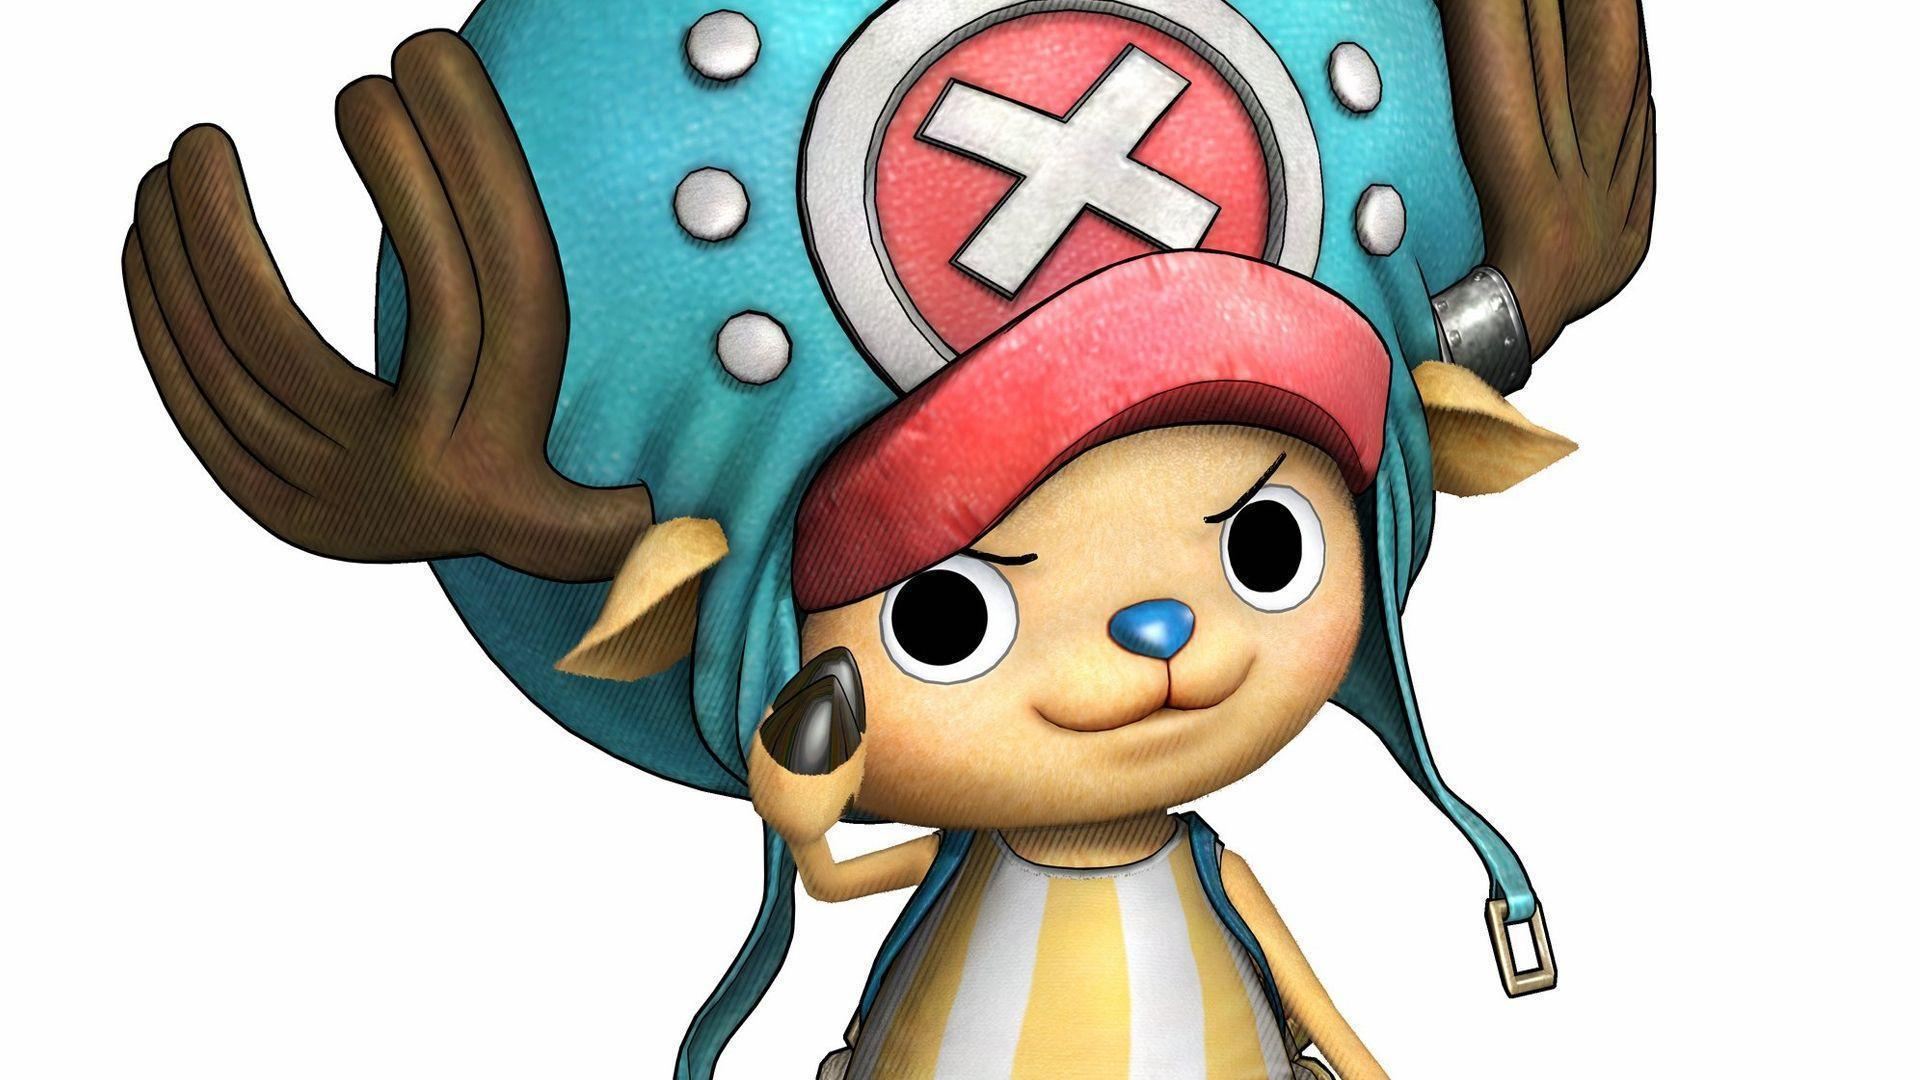 Chopper One Piece Wallpapers Wallpaper Cave